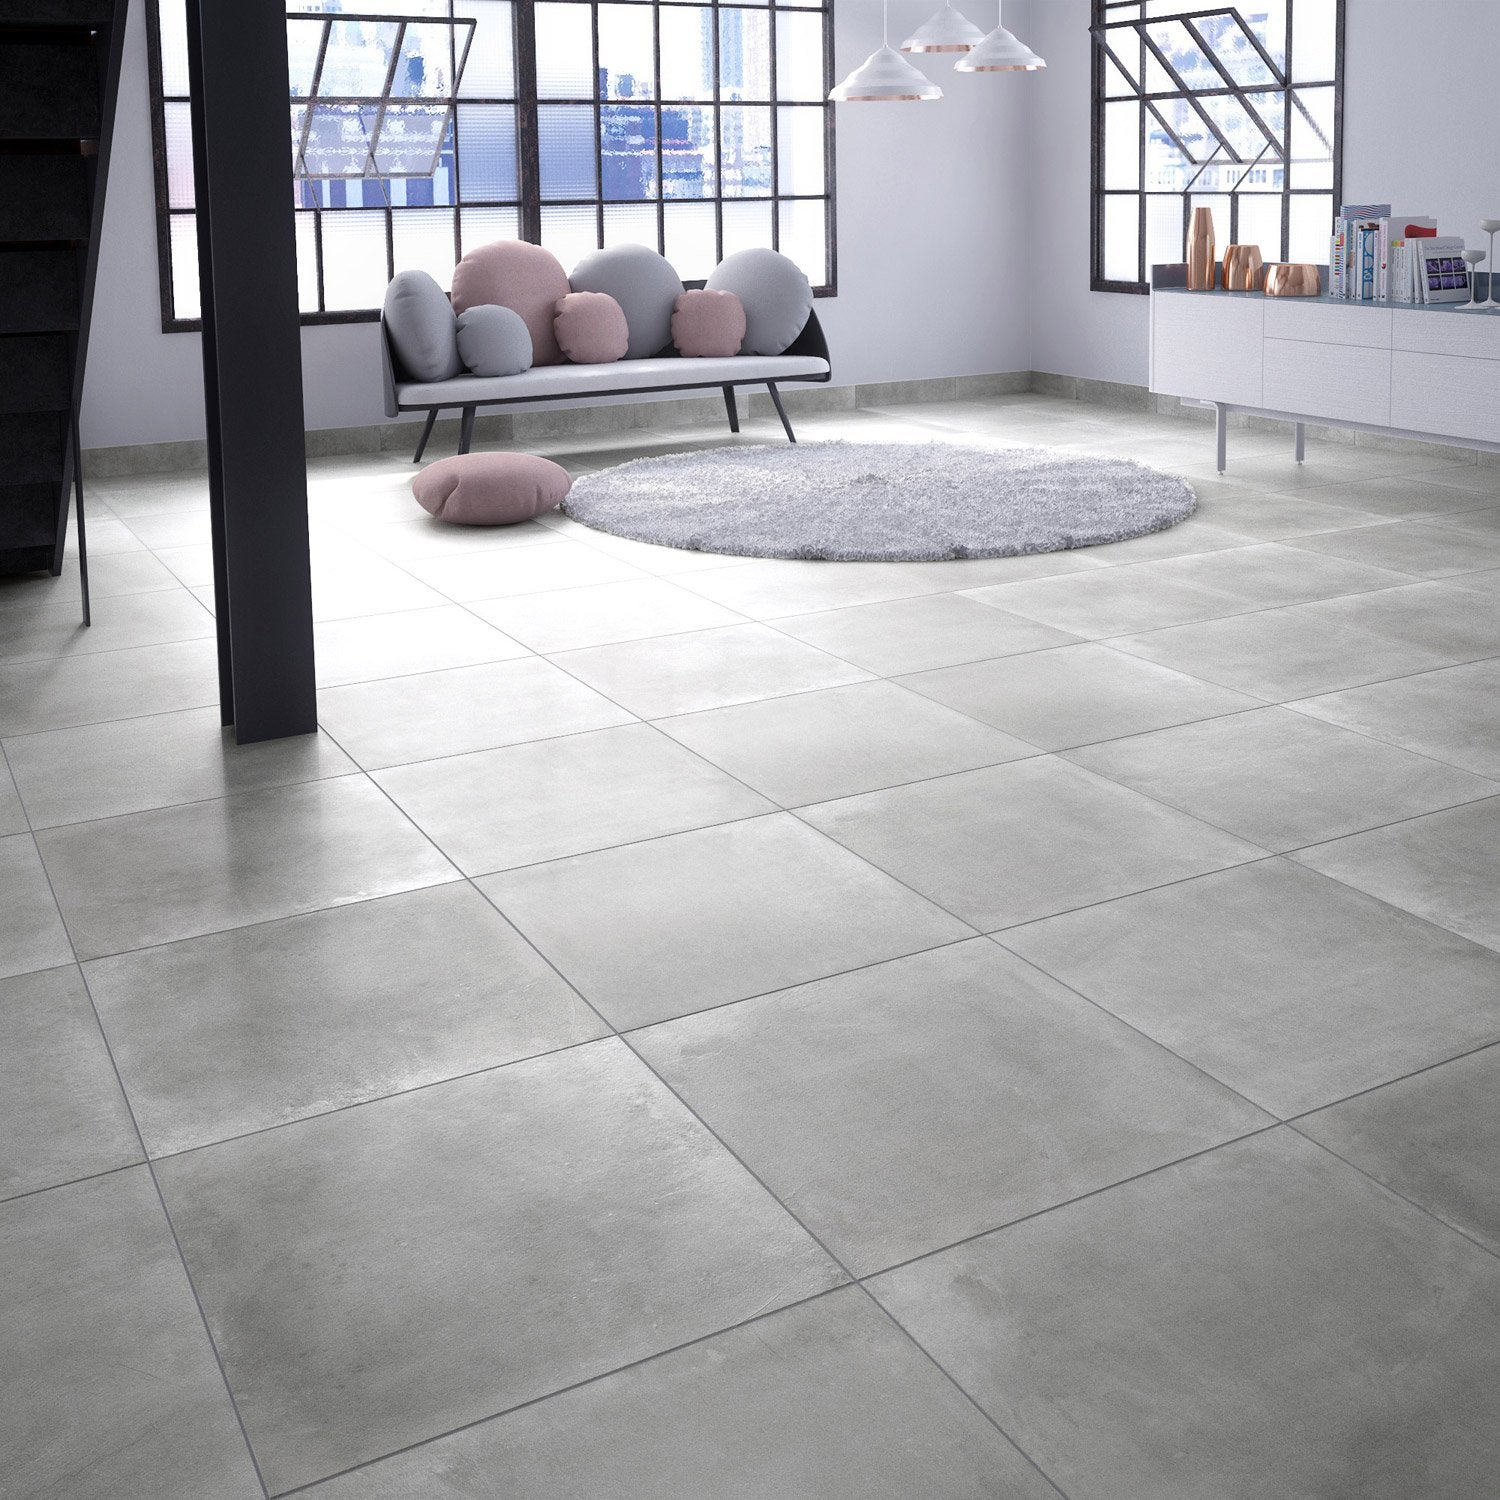 Awesome carrelage sol 60x60 gris photos for Carrelage 60x60 gris anthracite